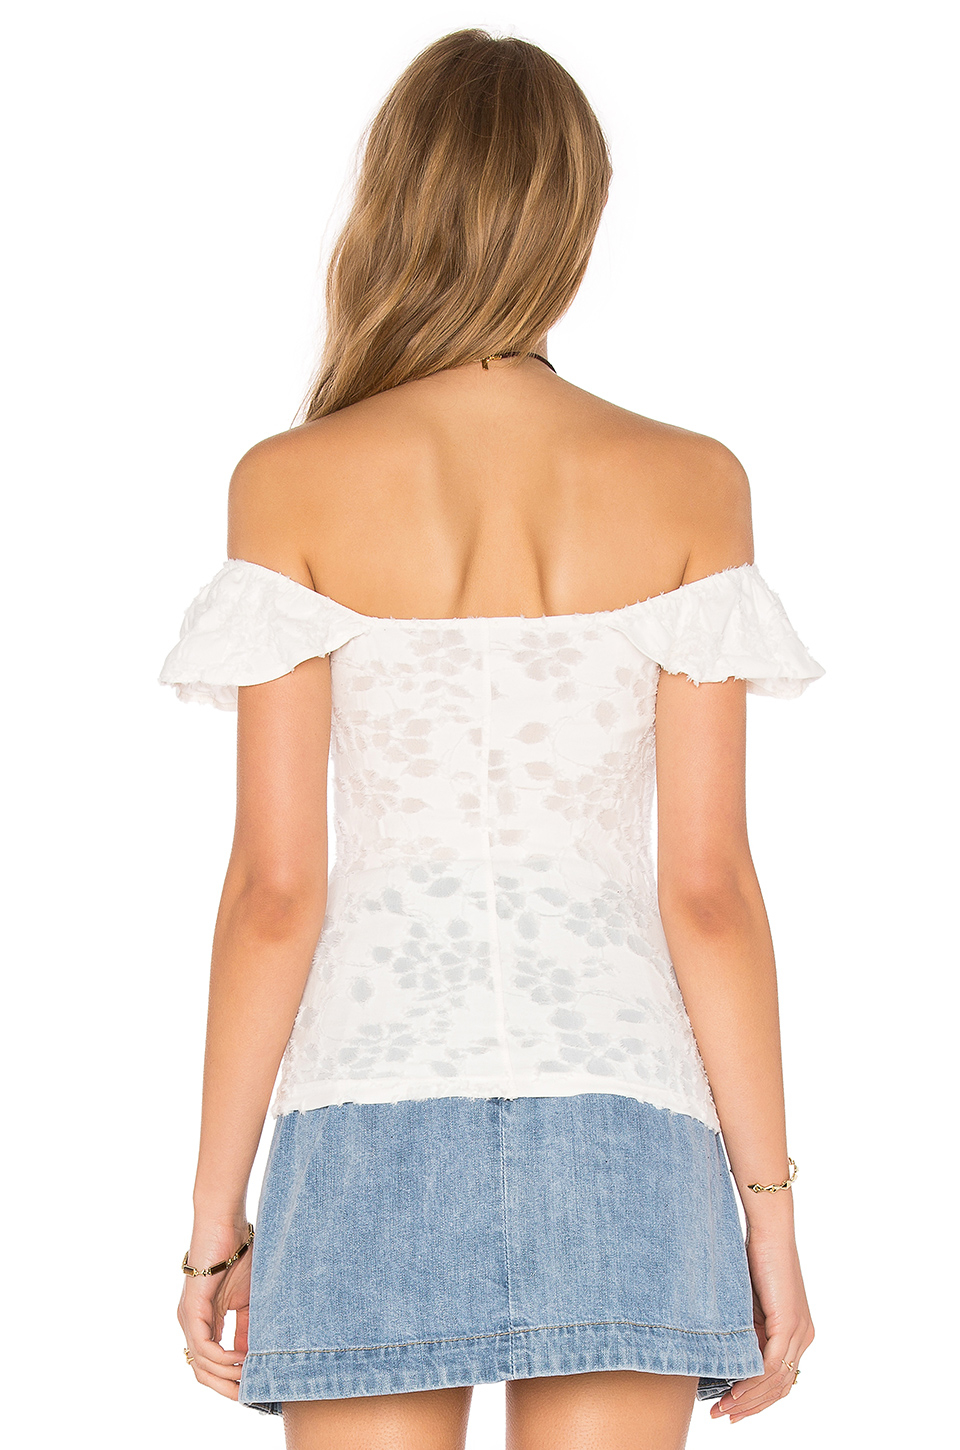 512e09edc4d3a Lyst - Free People Popsicle Off The Shoulder Top in White